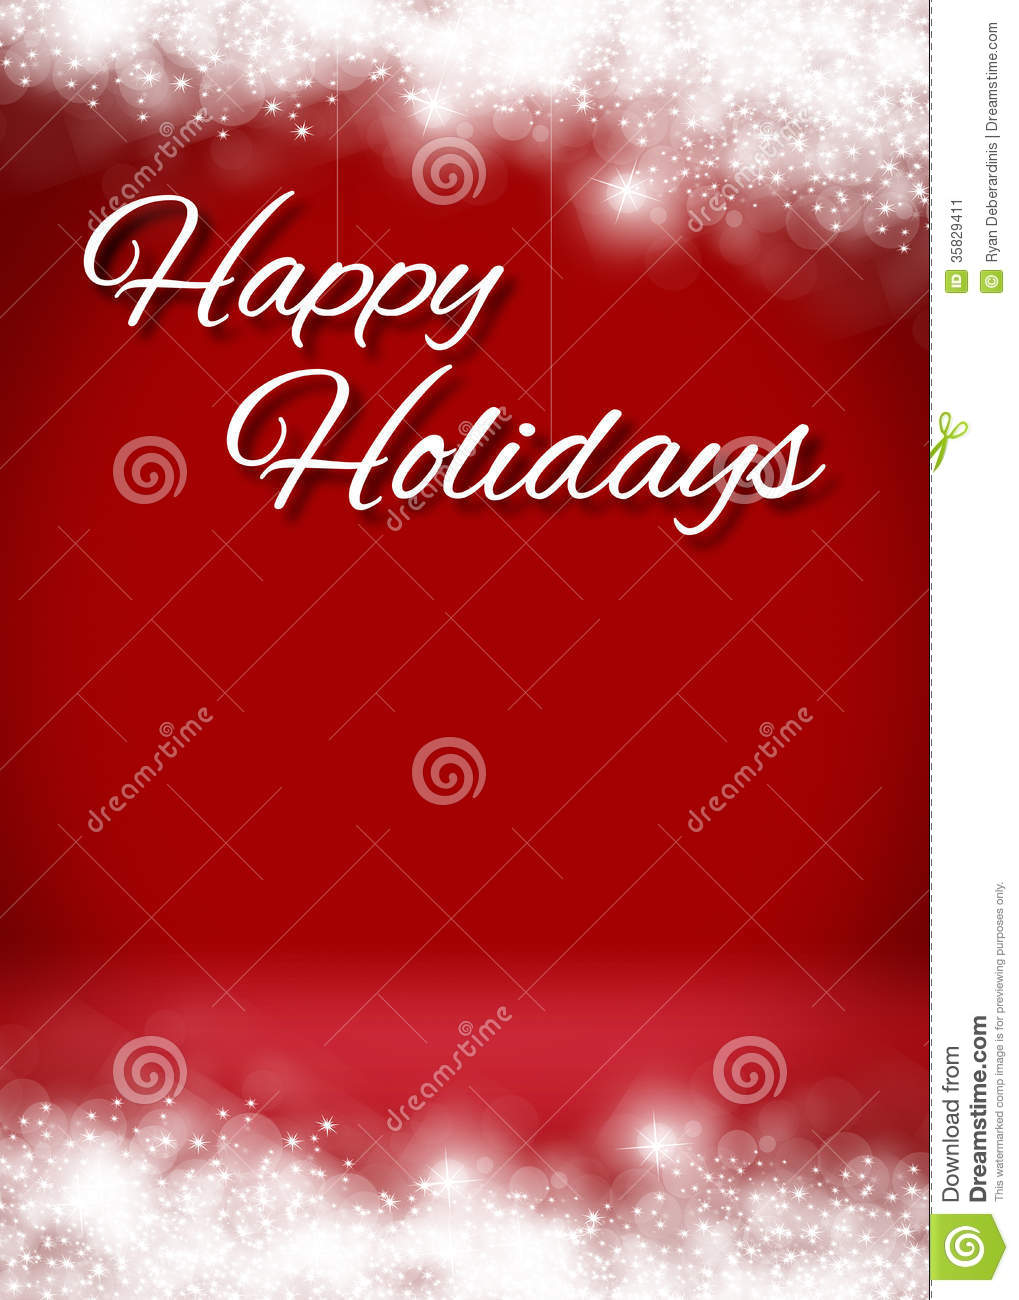 snowy happy holidays 3d card background stage stock